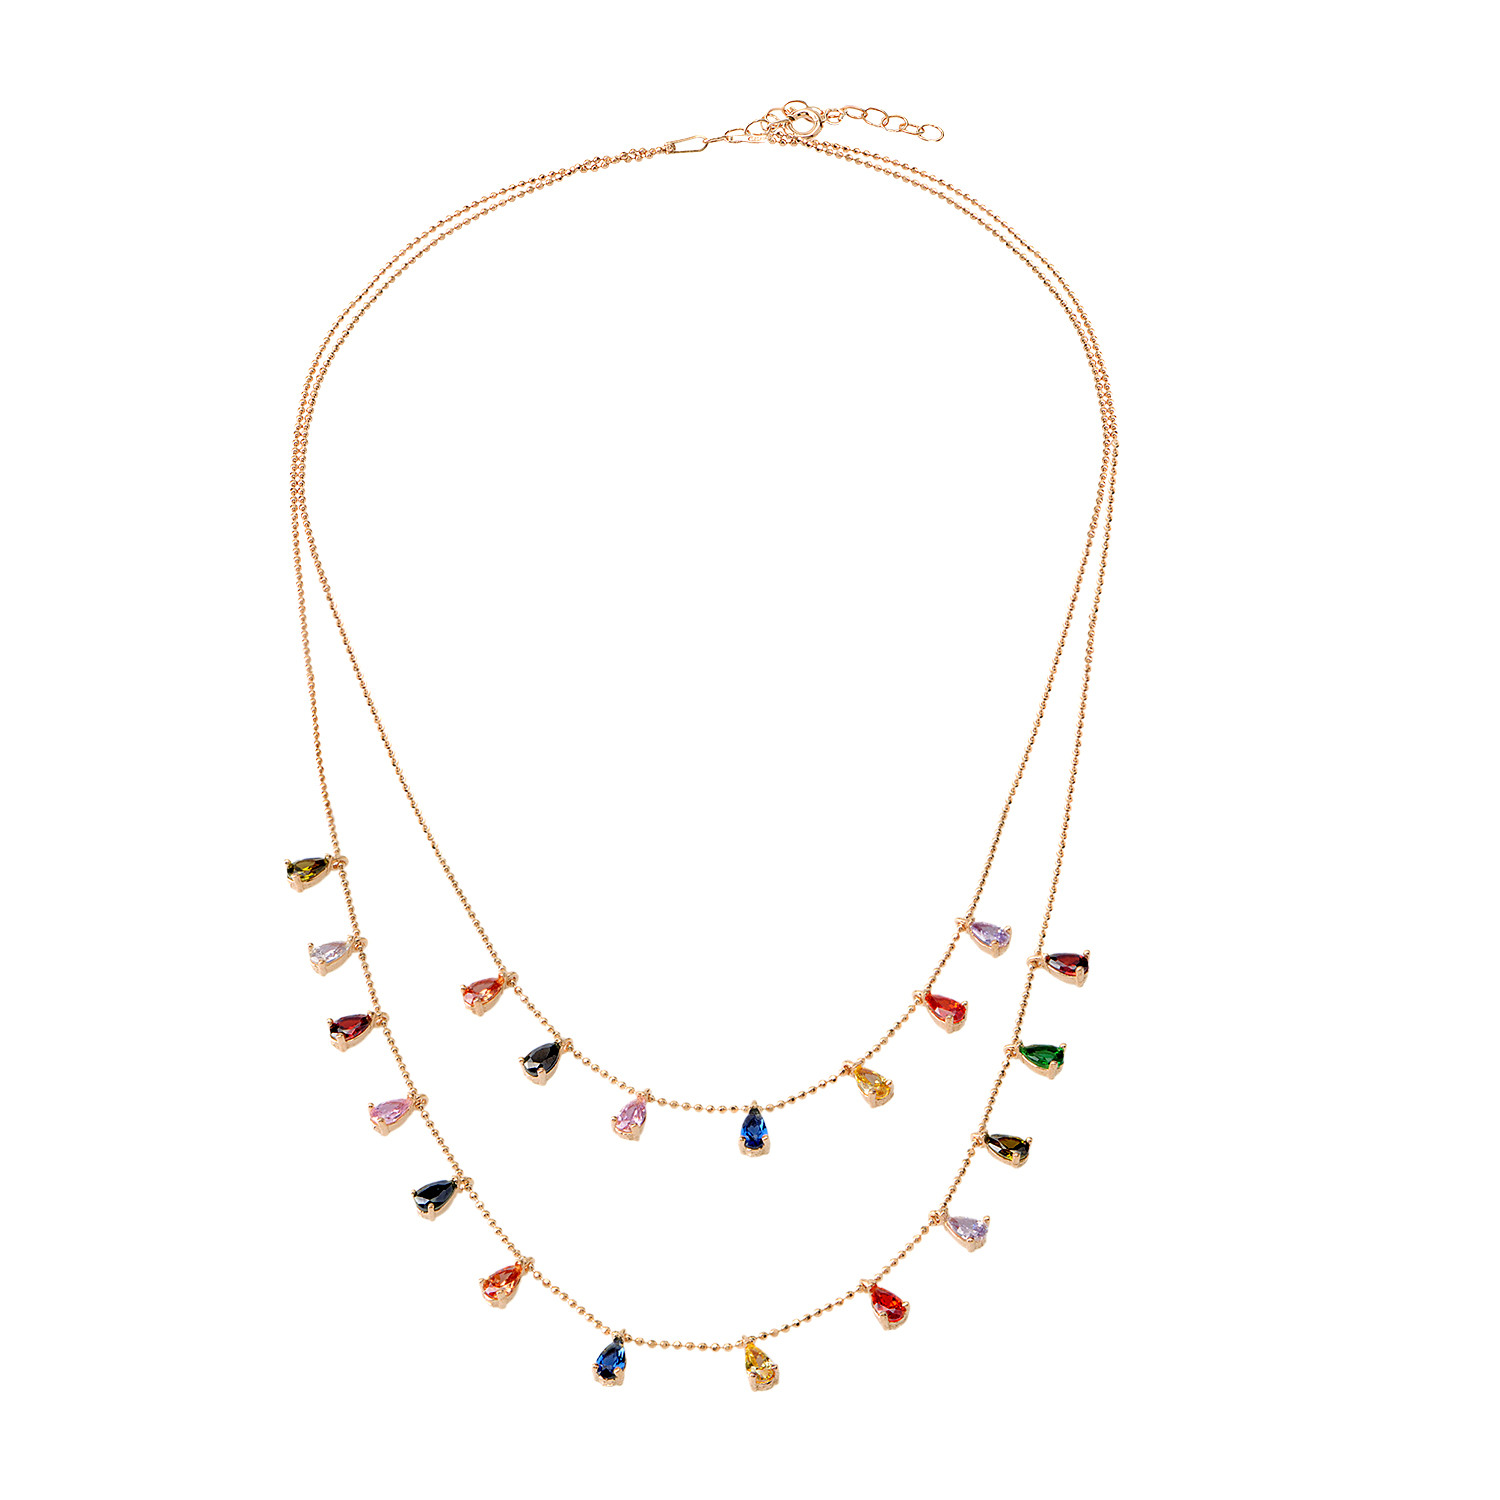 Festival Lights Necklace - The Firestone Collection - Fashion Jewelry & Accessories